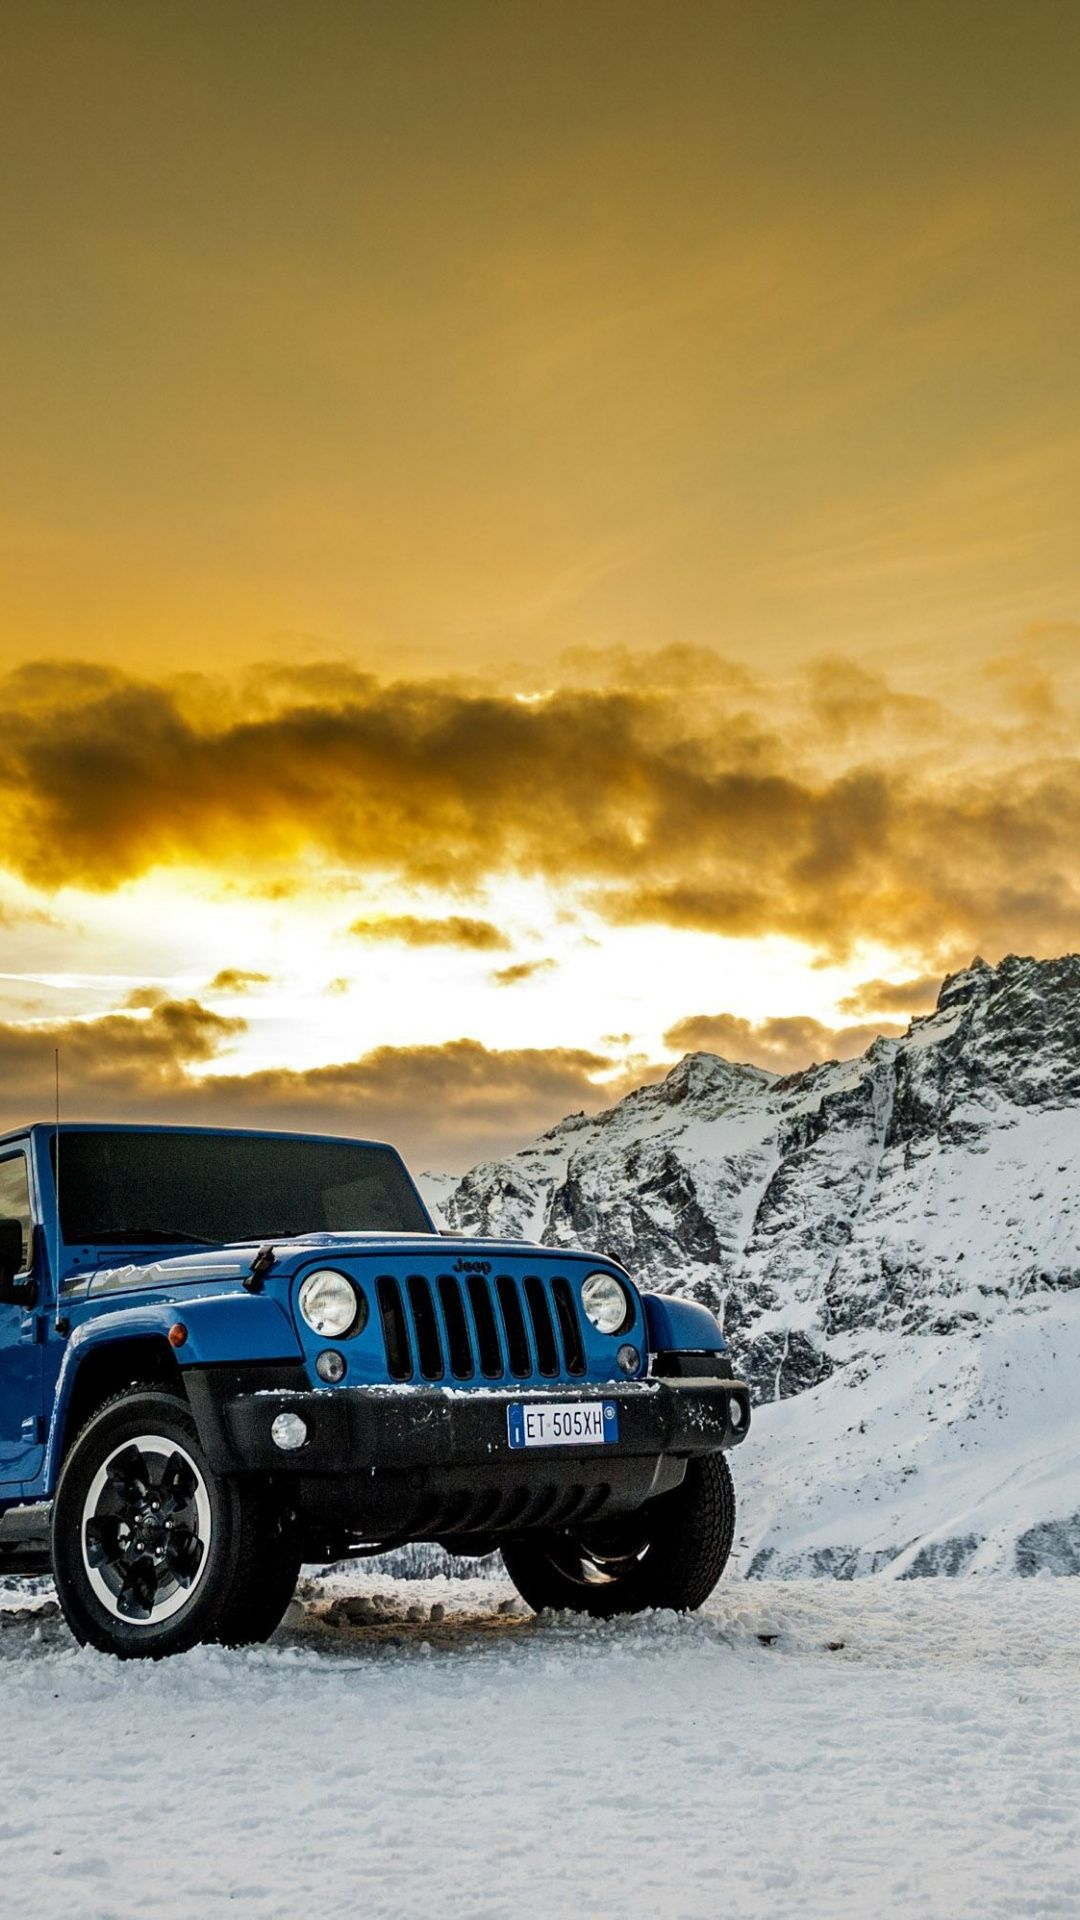 Blue Jeep Wrangler Off Road 1080x1920 Wallpaper Jeep